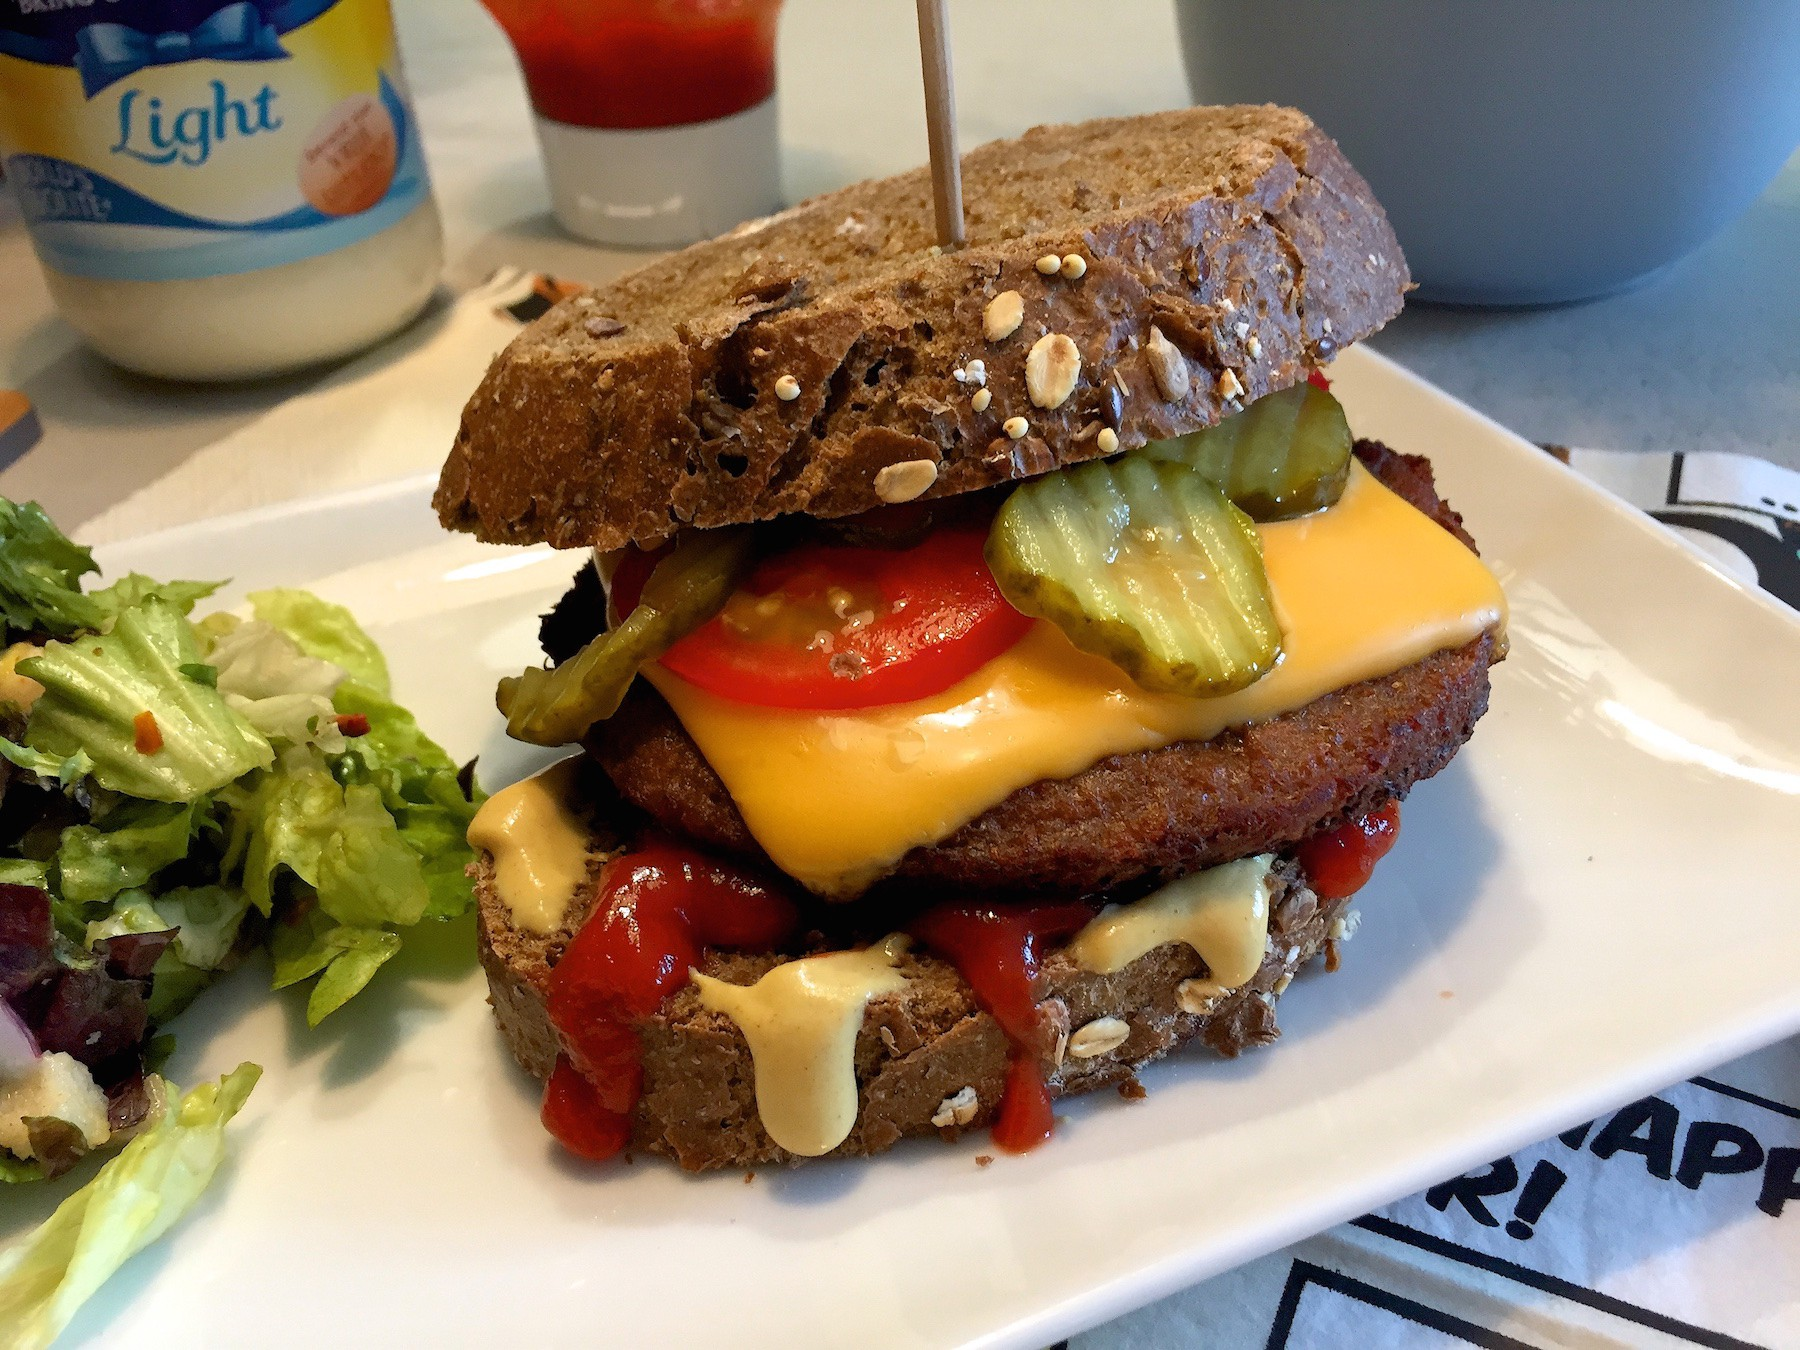 cheeseburger van sneden brood